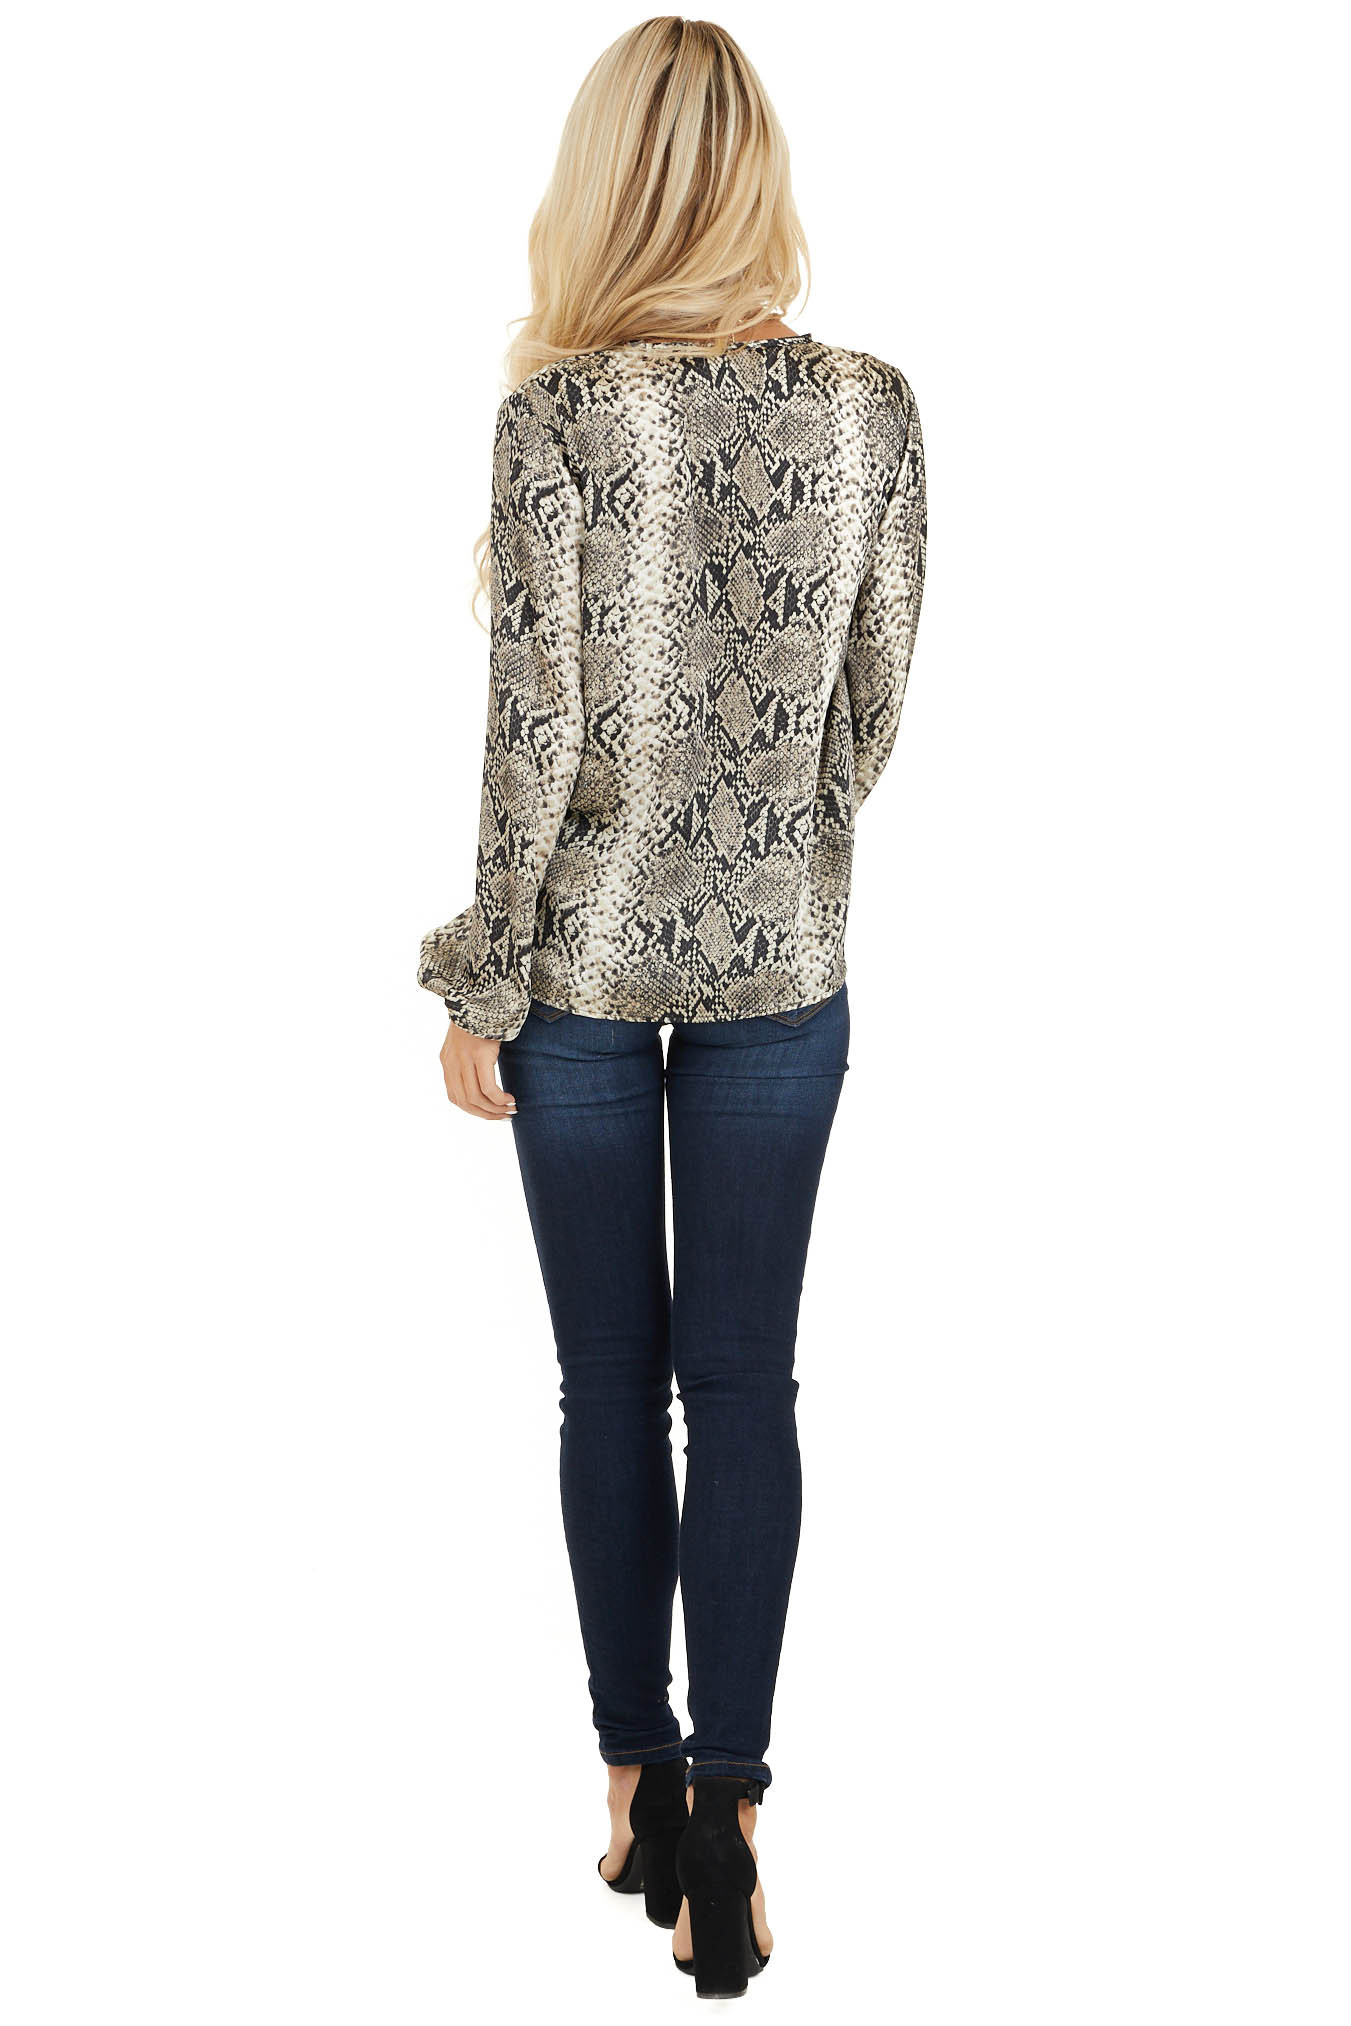 Cream and Charcoal Snakeskin Print Top with Front Twist back full body